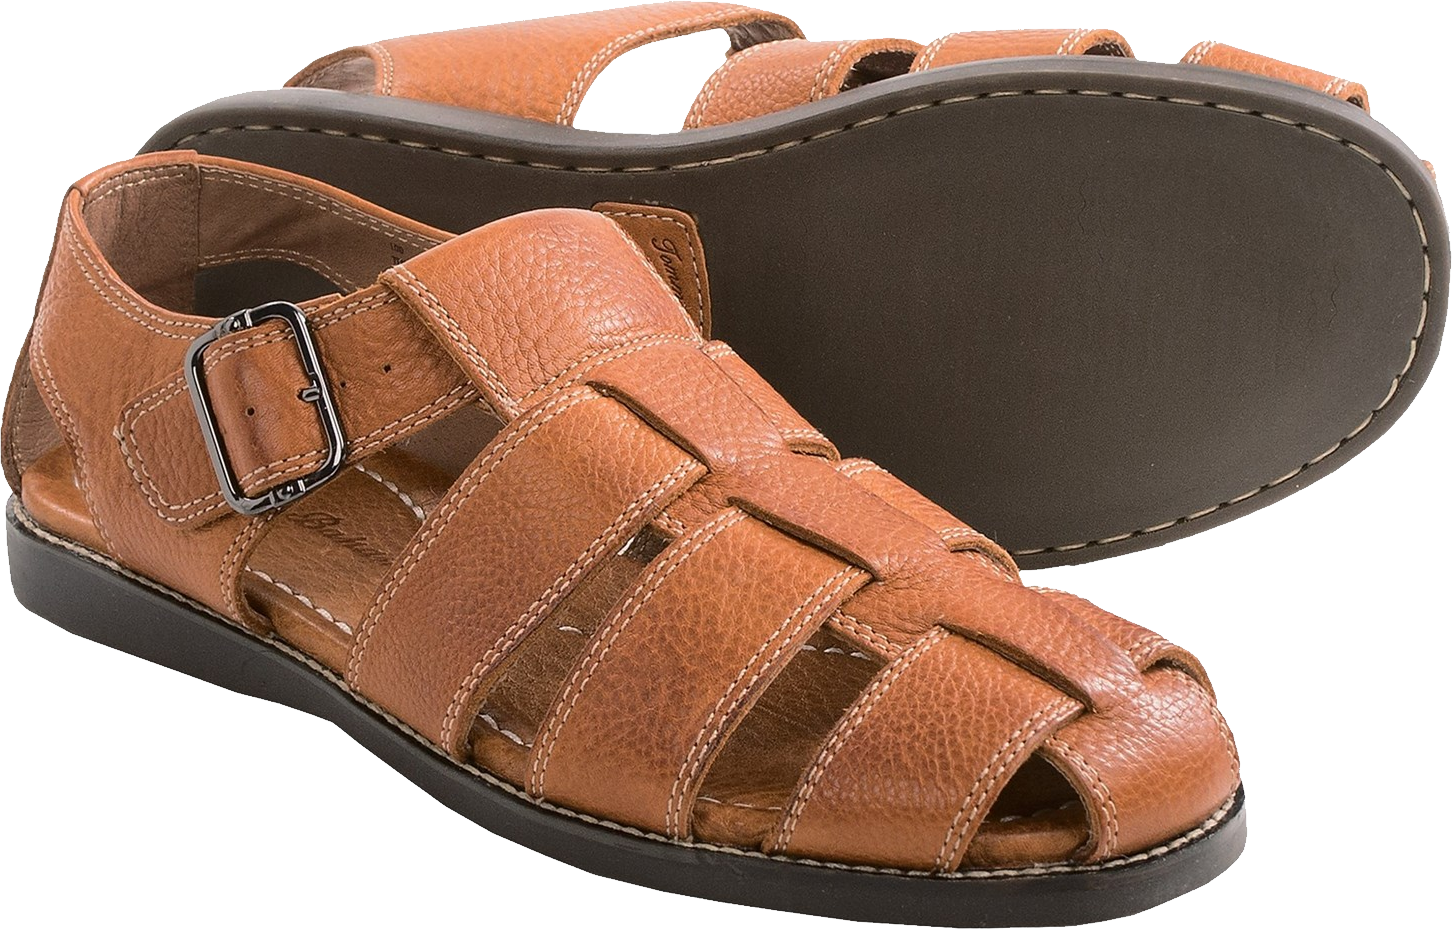 Leather Sandal PNG Image